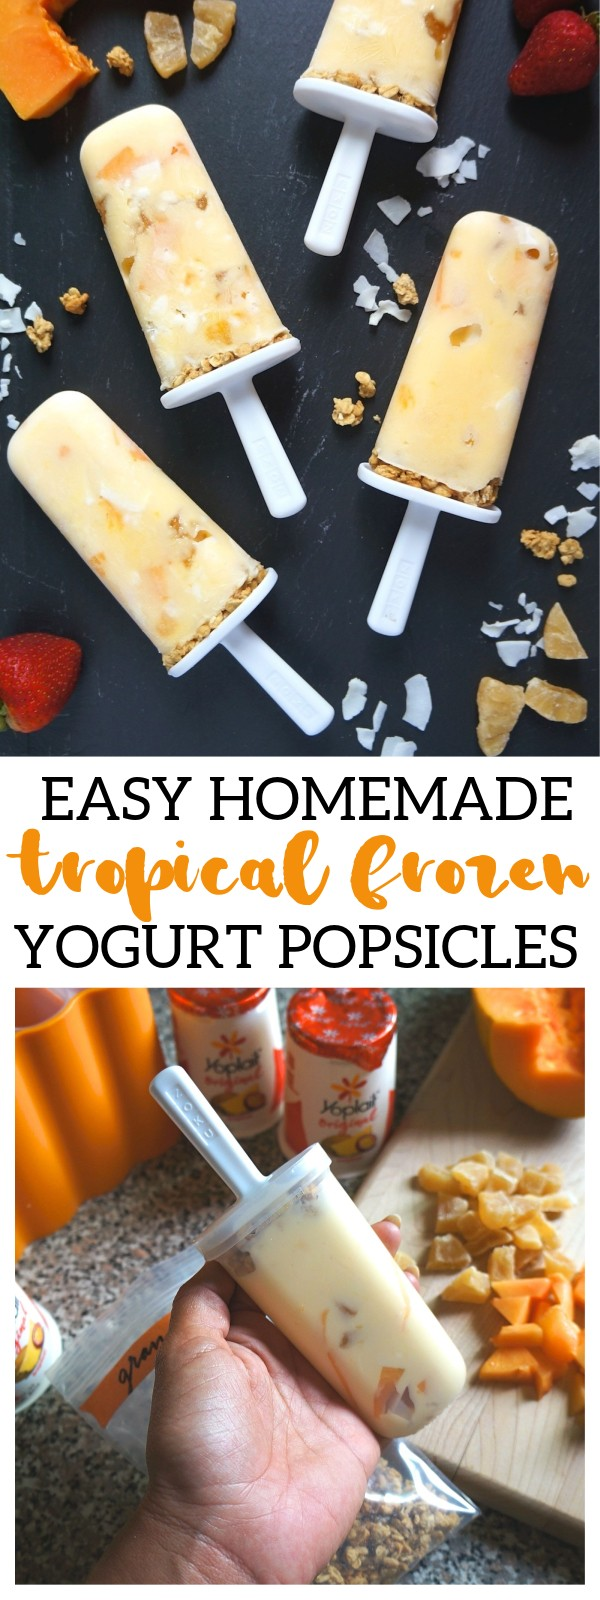 Cool Off With These Easy Homemade Tropical Frozen Yogurt Popsicles!